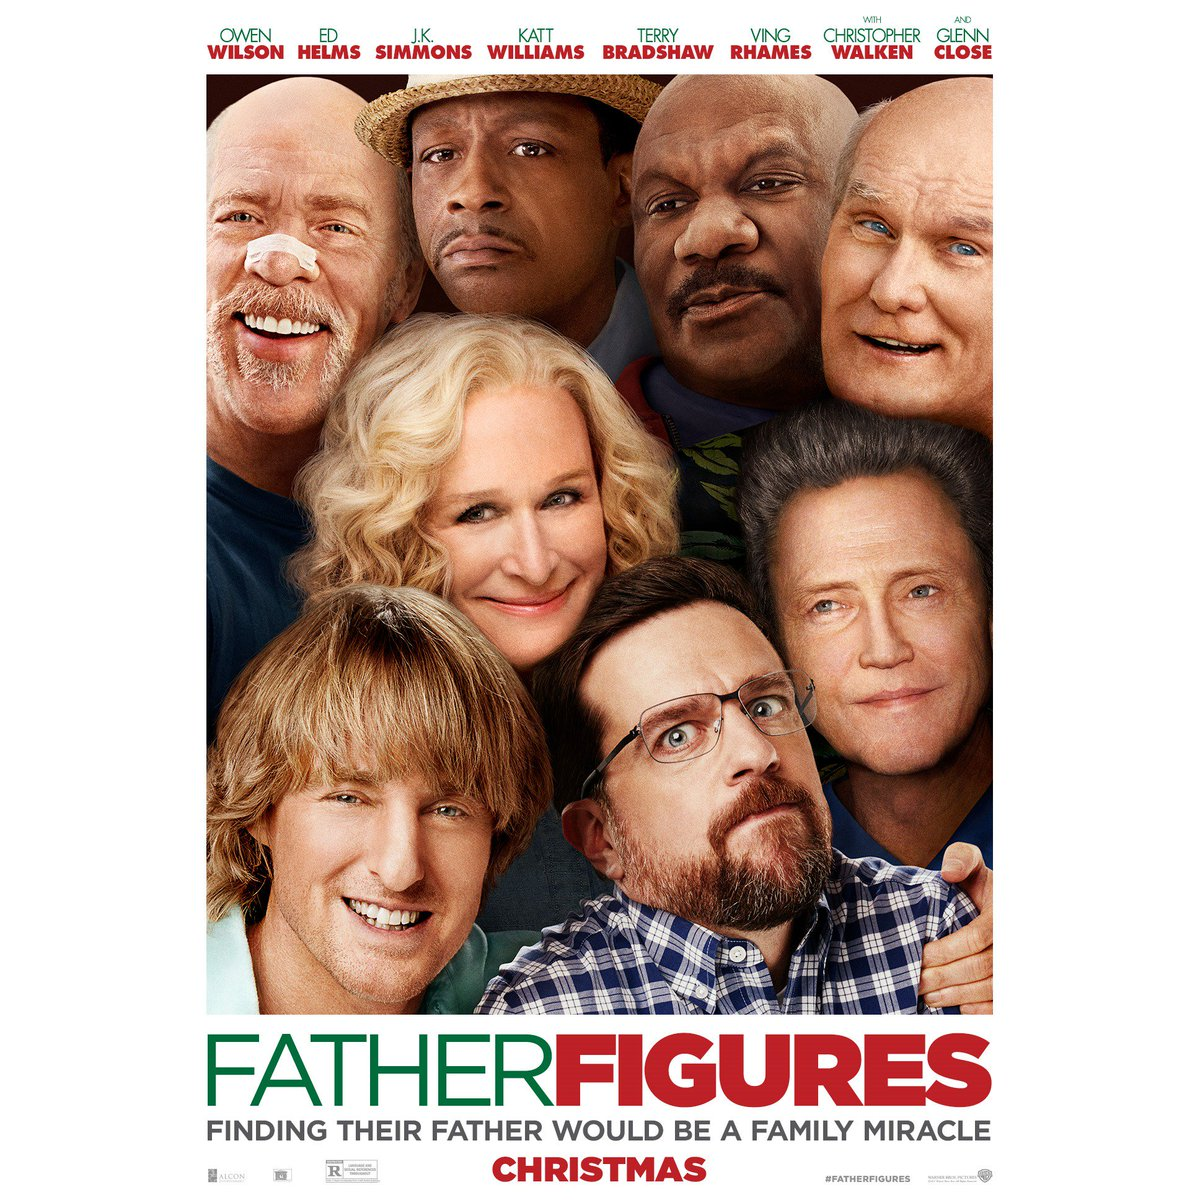 Finding their father would be a family miracle. #FatherFigures – in theaters December 22!!!